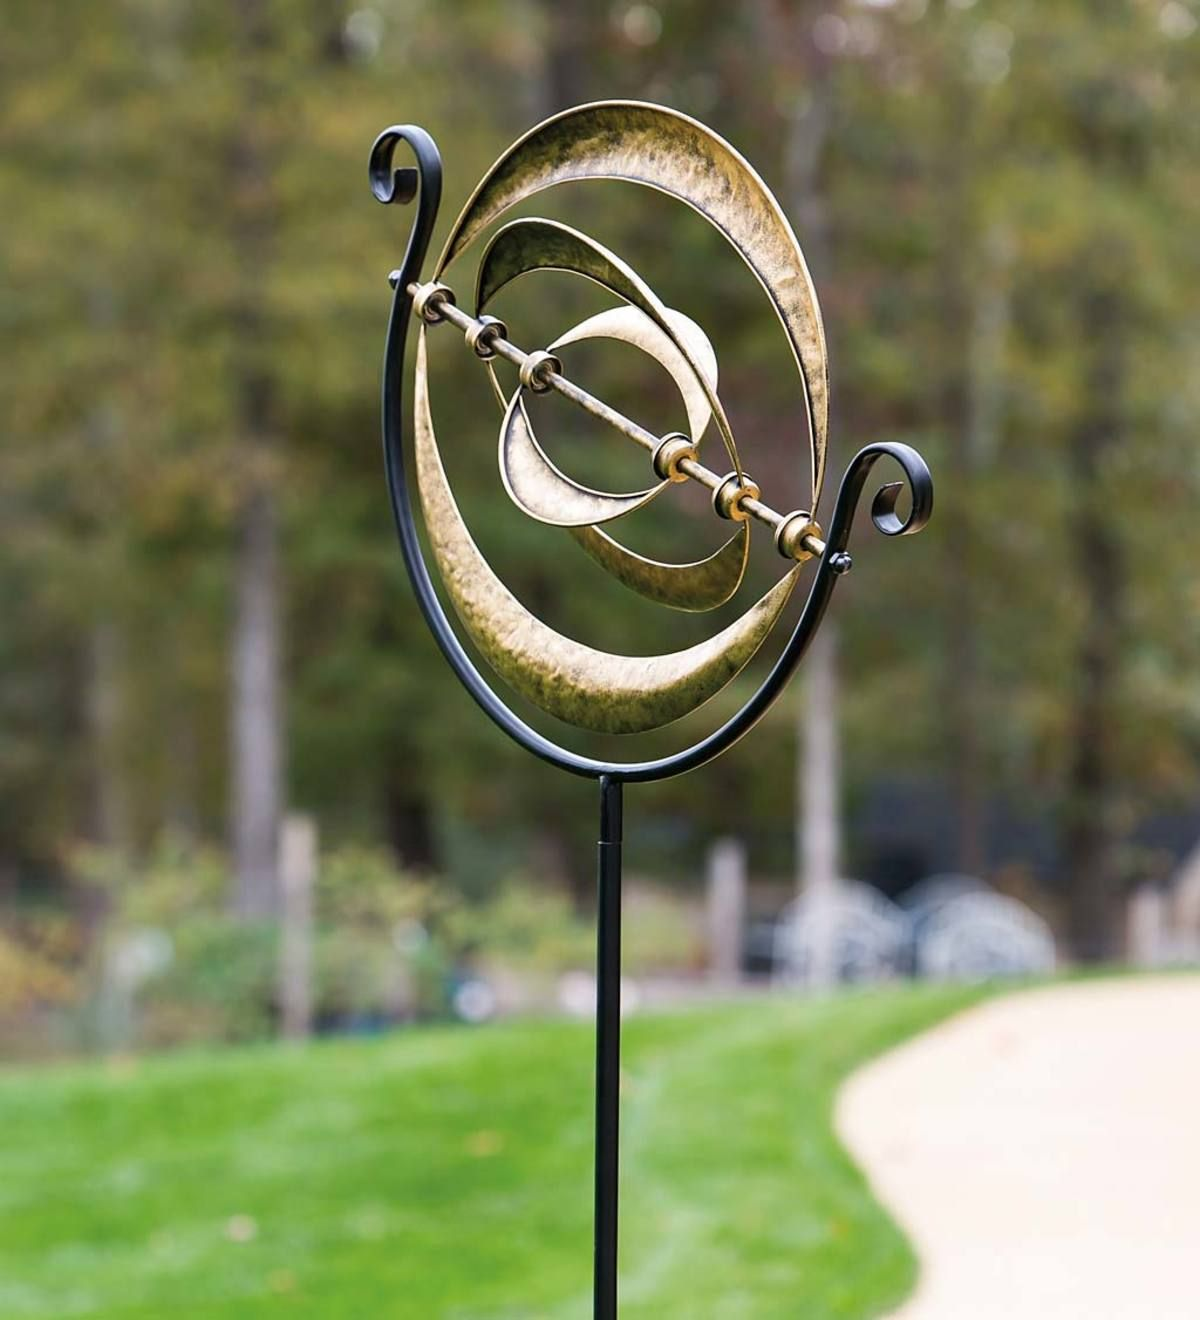 This Simple Yet Elegant Garden Accent Will Make Your Yard Look Out Of This World Our Galactic Metal Win Metal Wind Spinners Wind Spinners Garden Wind Spinners